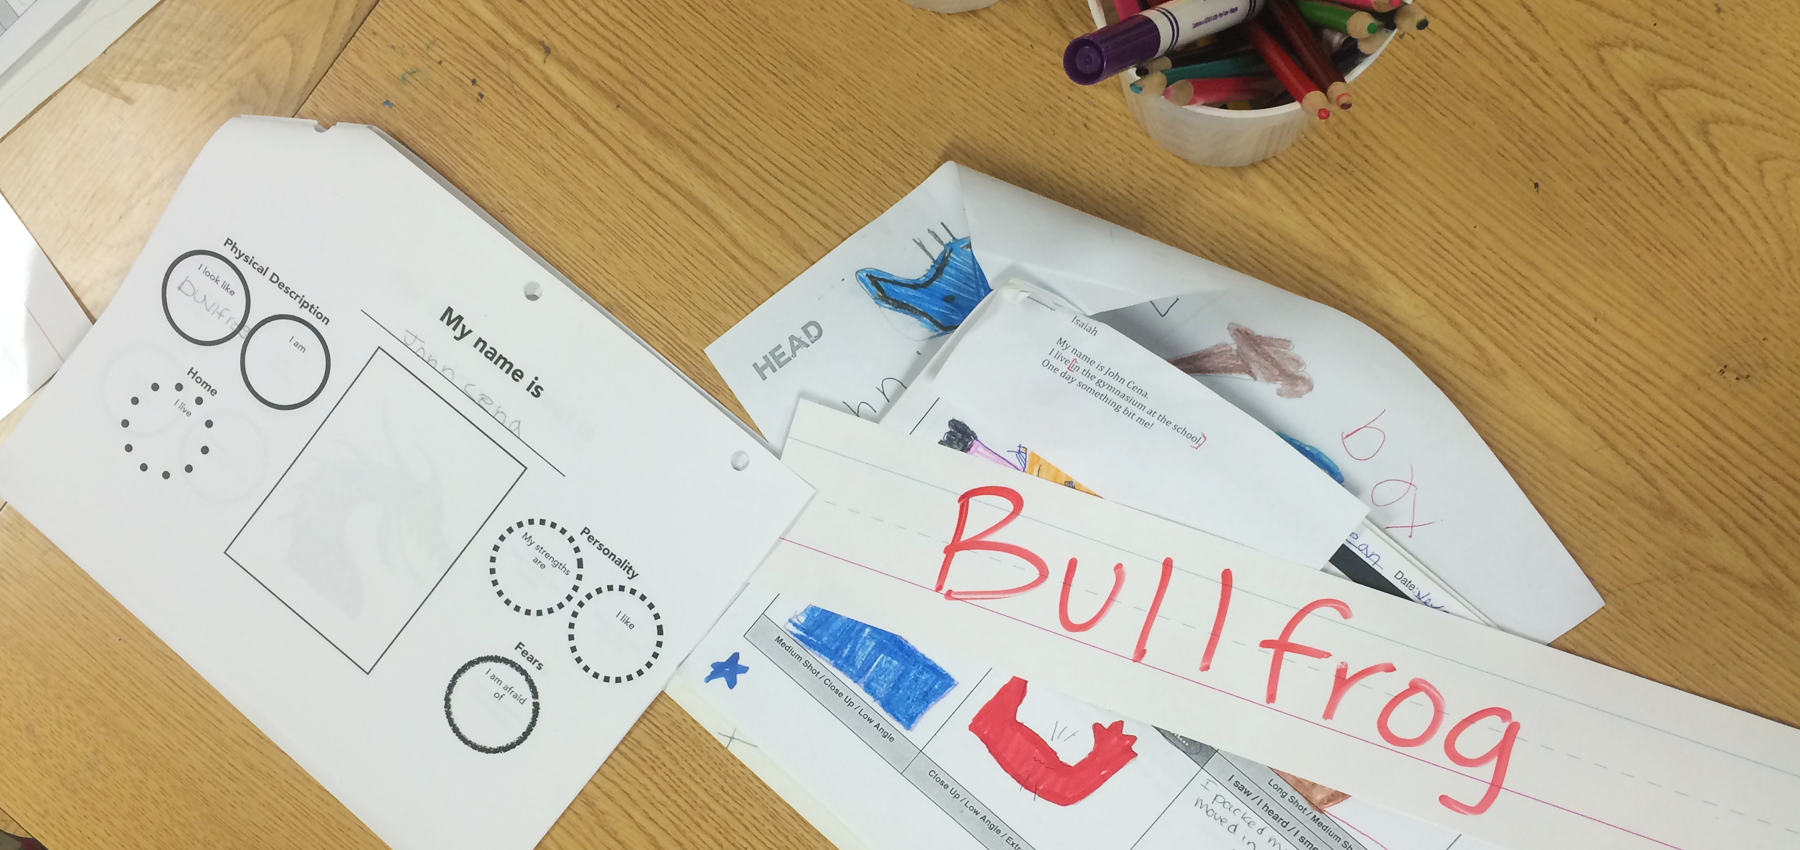 Paper-based story materials